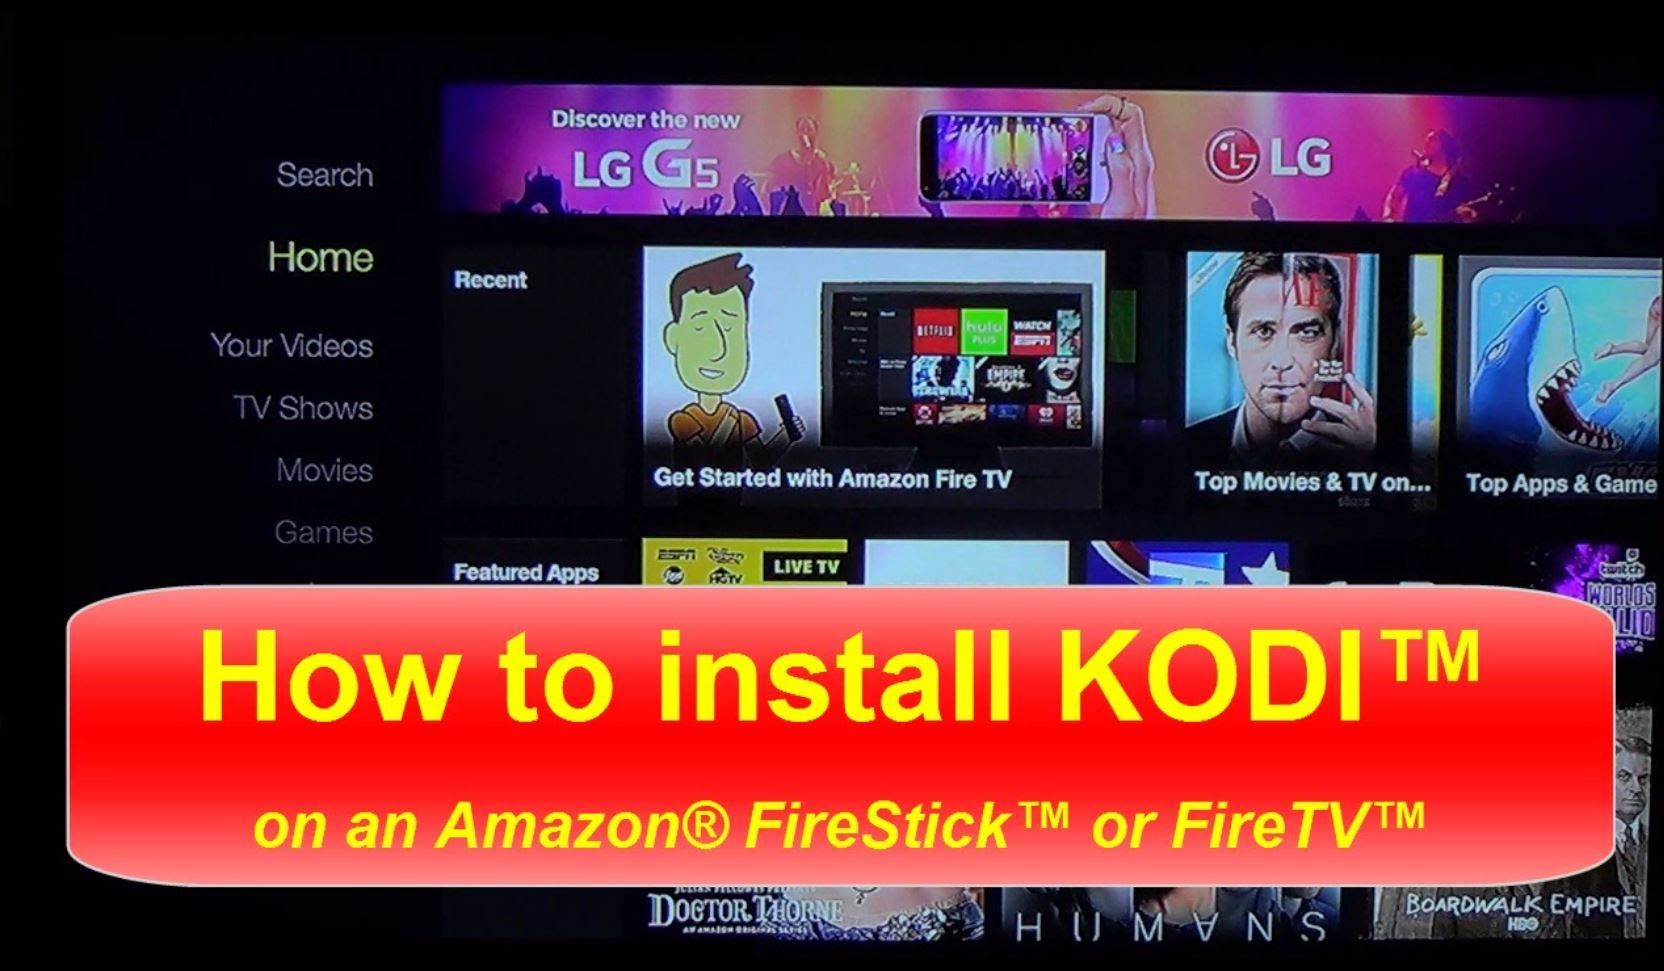 Woody rockcrusher back kodi finally woody and rockcrusher are back in a new addon for kodi and jarvis 16 the addon is called vidtime and it is l